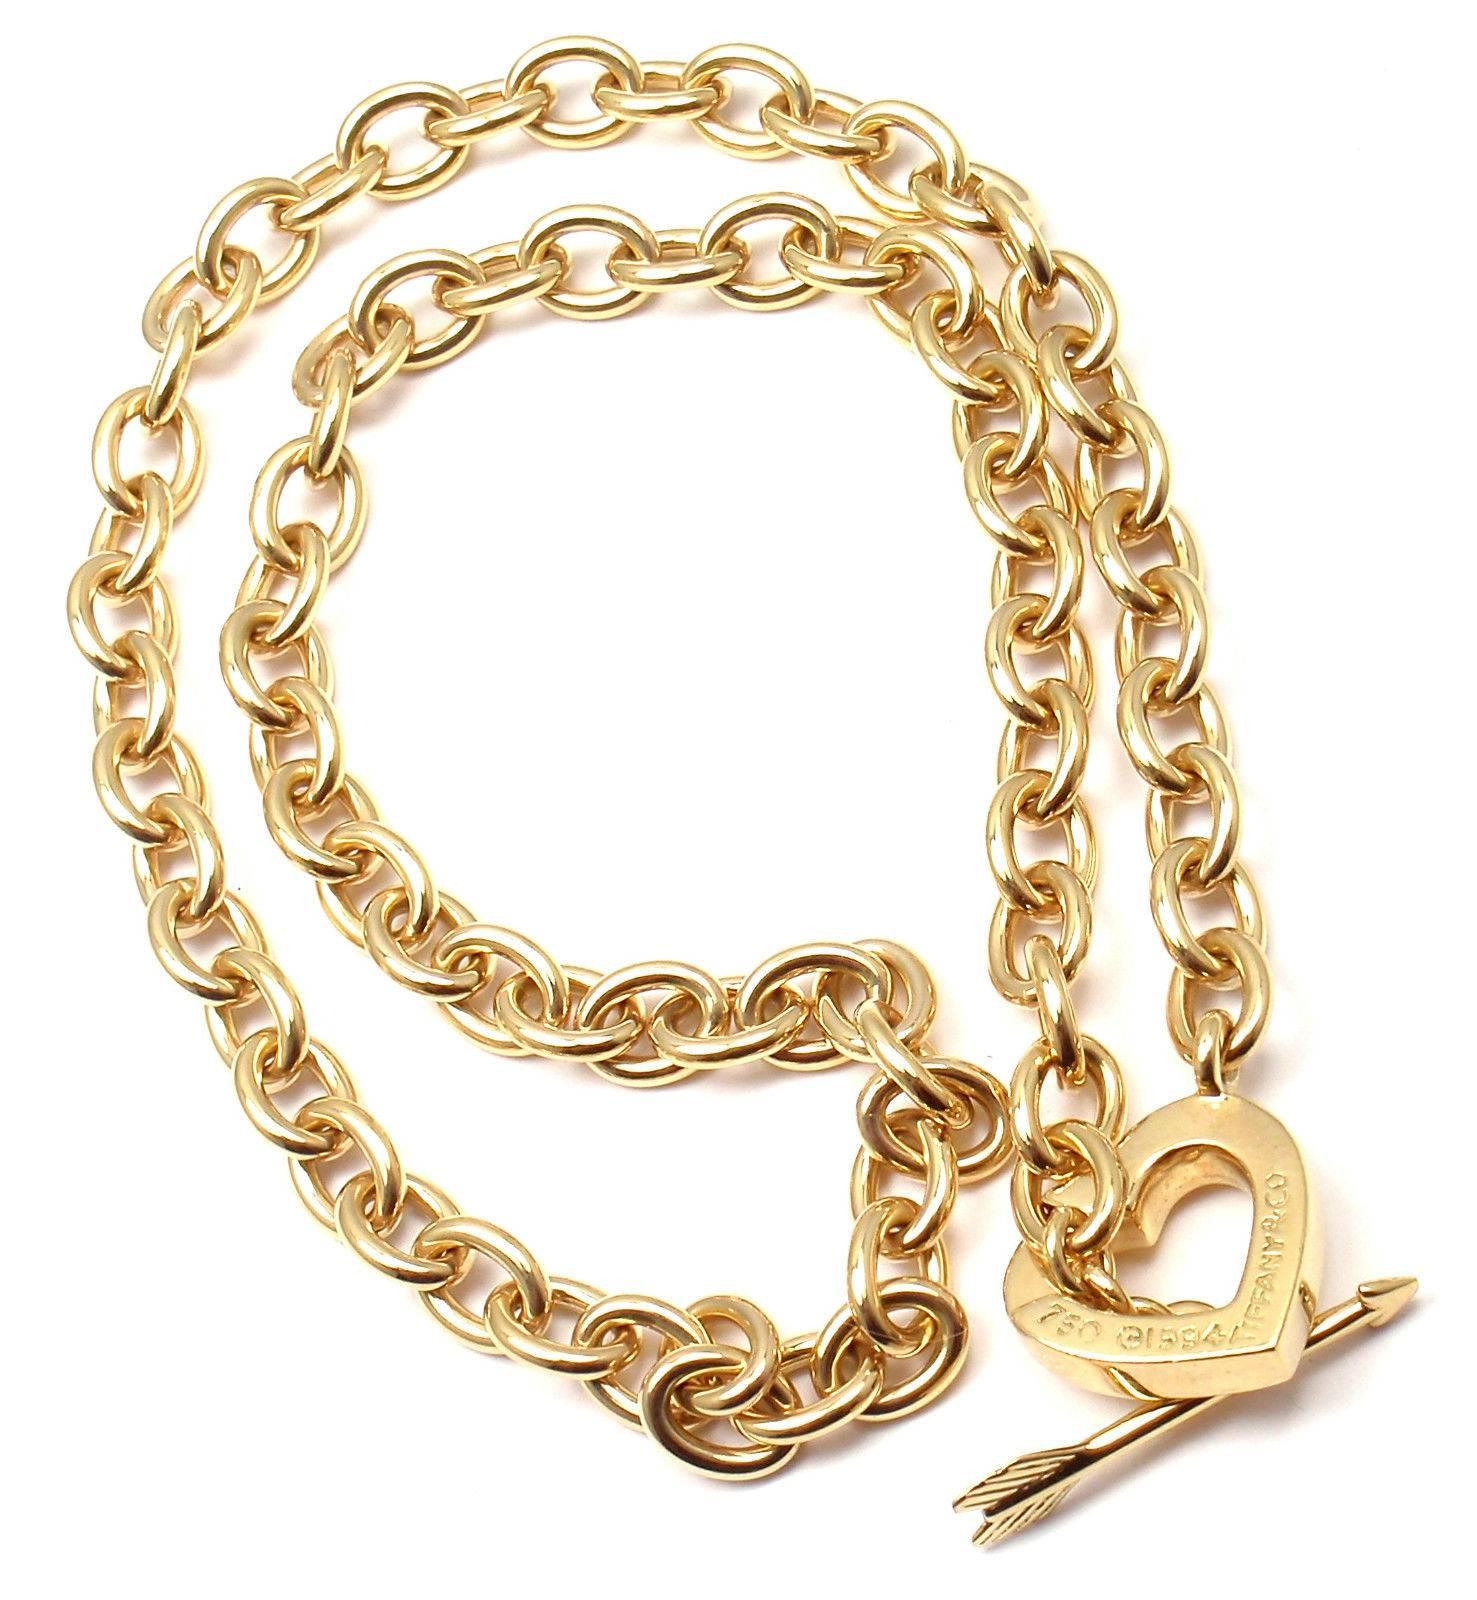 78e5e50ce Tiffany and Co. Heart And Arrow Link Toggle Gold Necklace For Sale at  1stdibs